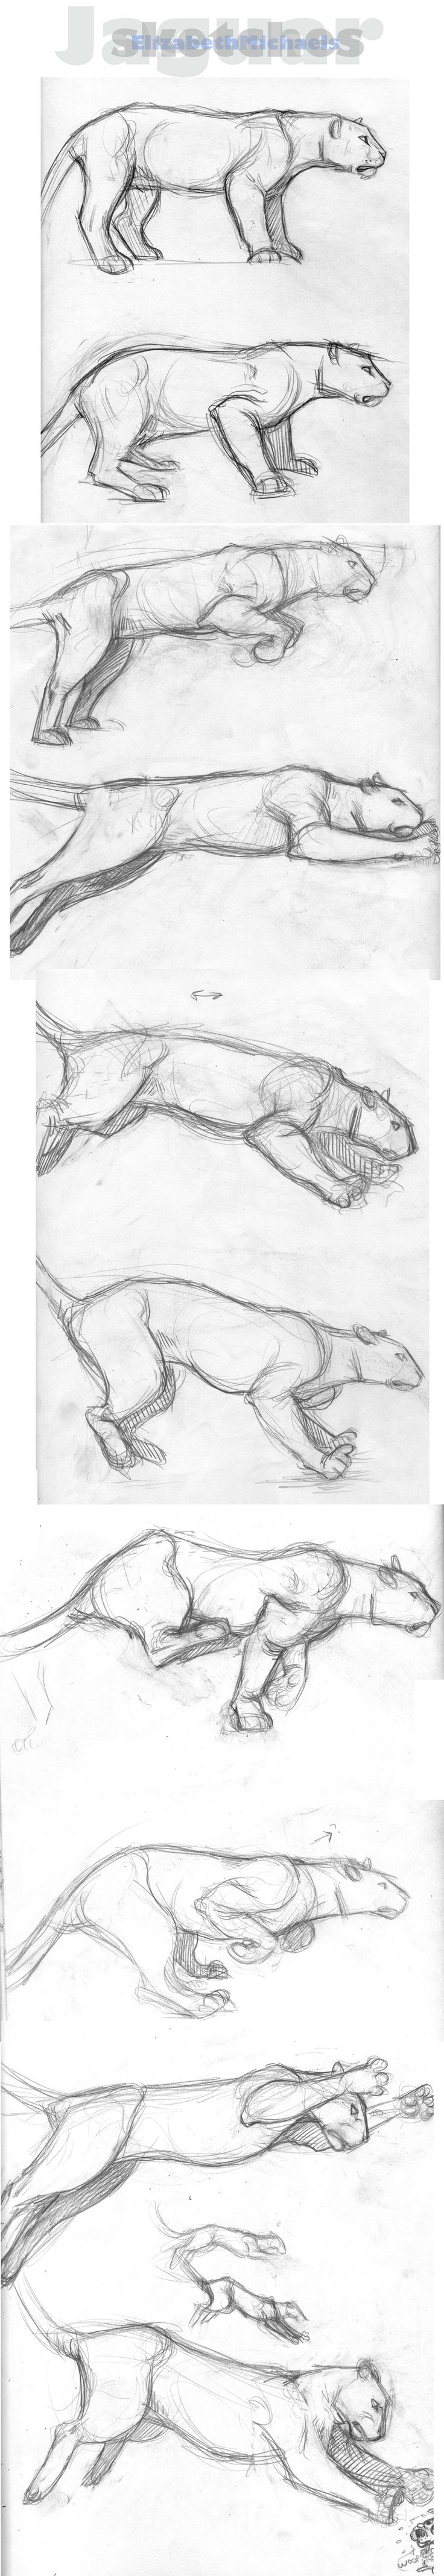 Sketches: Jaguar by ElizabethMichaels.deviantart.com on @deviantART